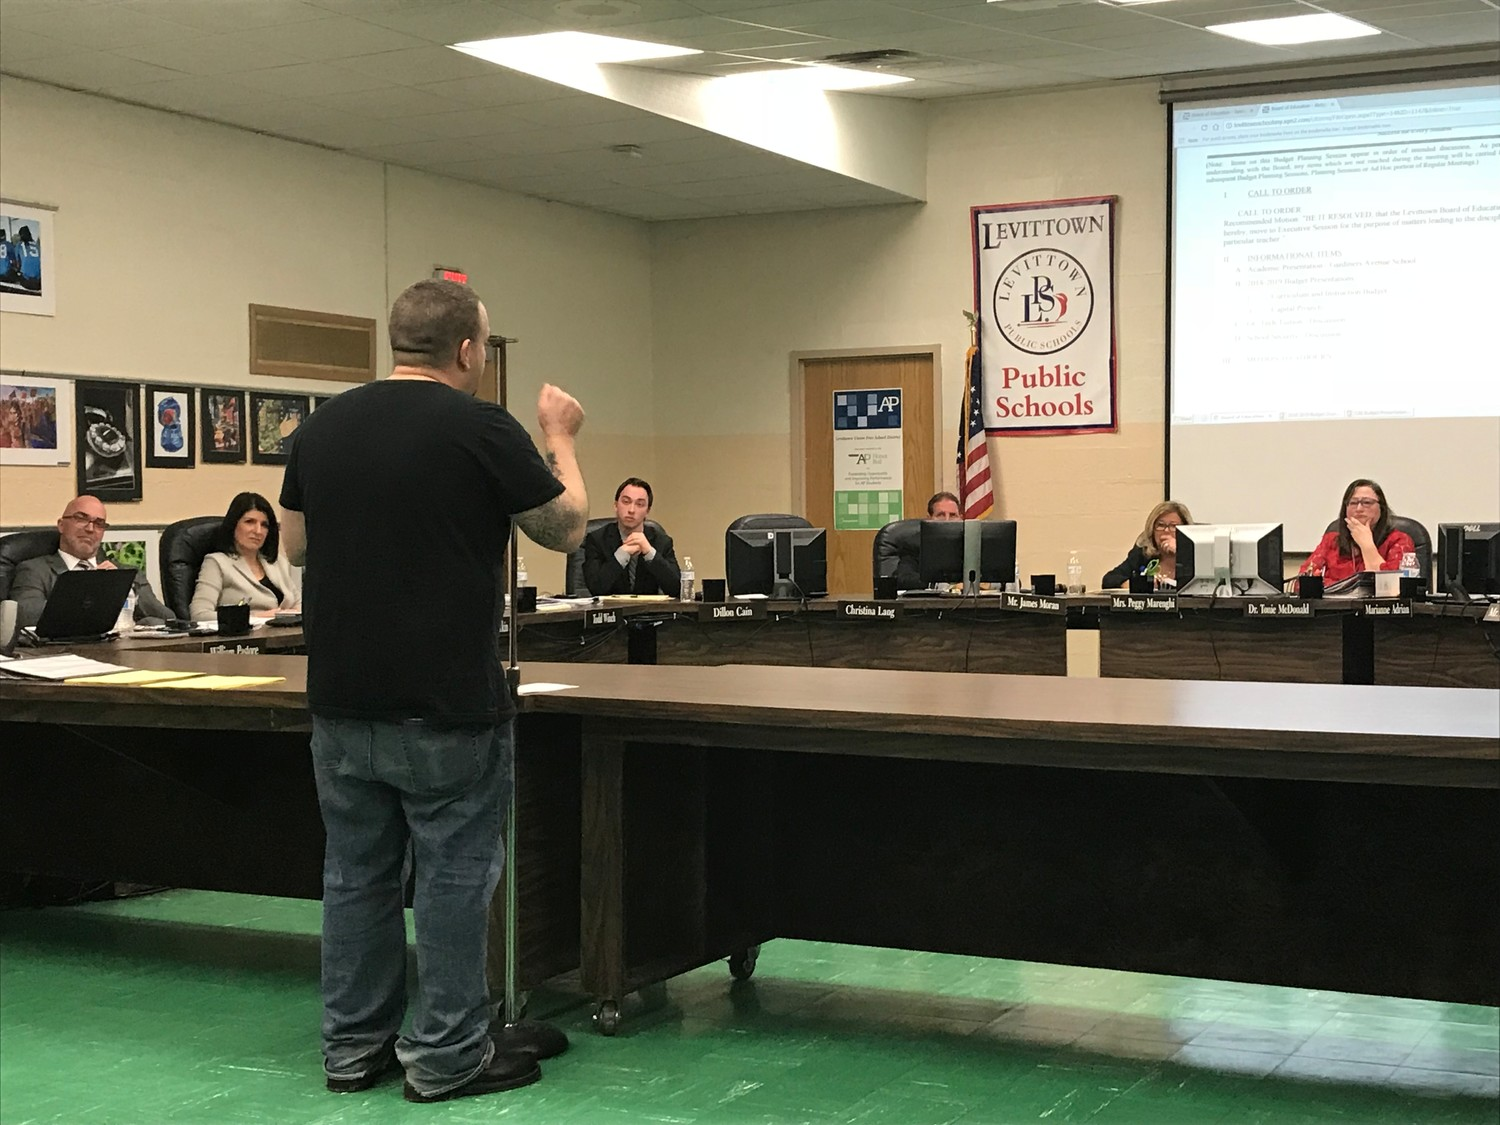 Mark Kerchman, of Levittown, spoke at length, demanding more security for students, at the Feb. 28 Levittown school board meeting.